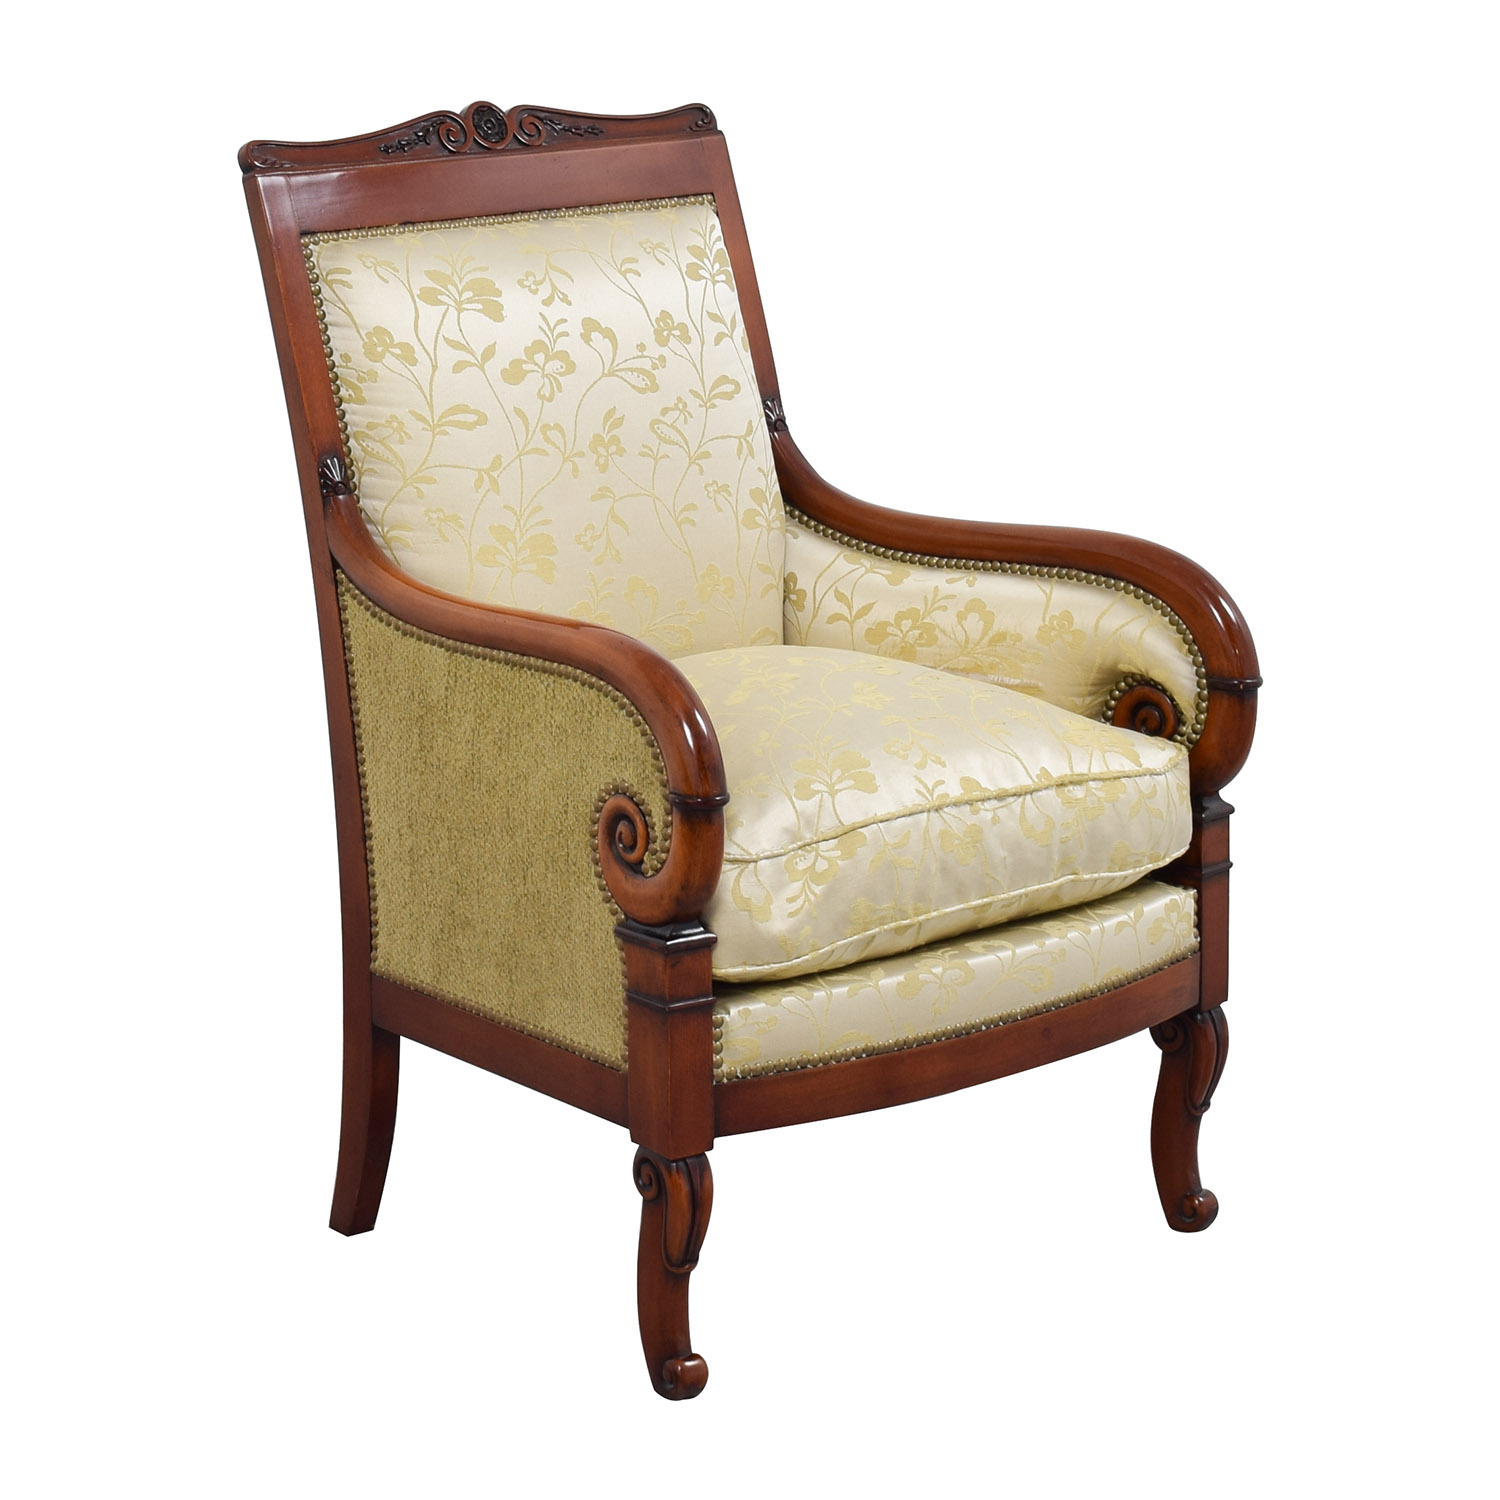 Damask lounge chair -  Silk Damask Gold Upholstered Chair Sale